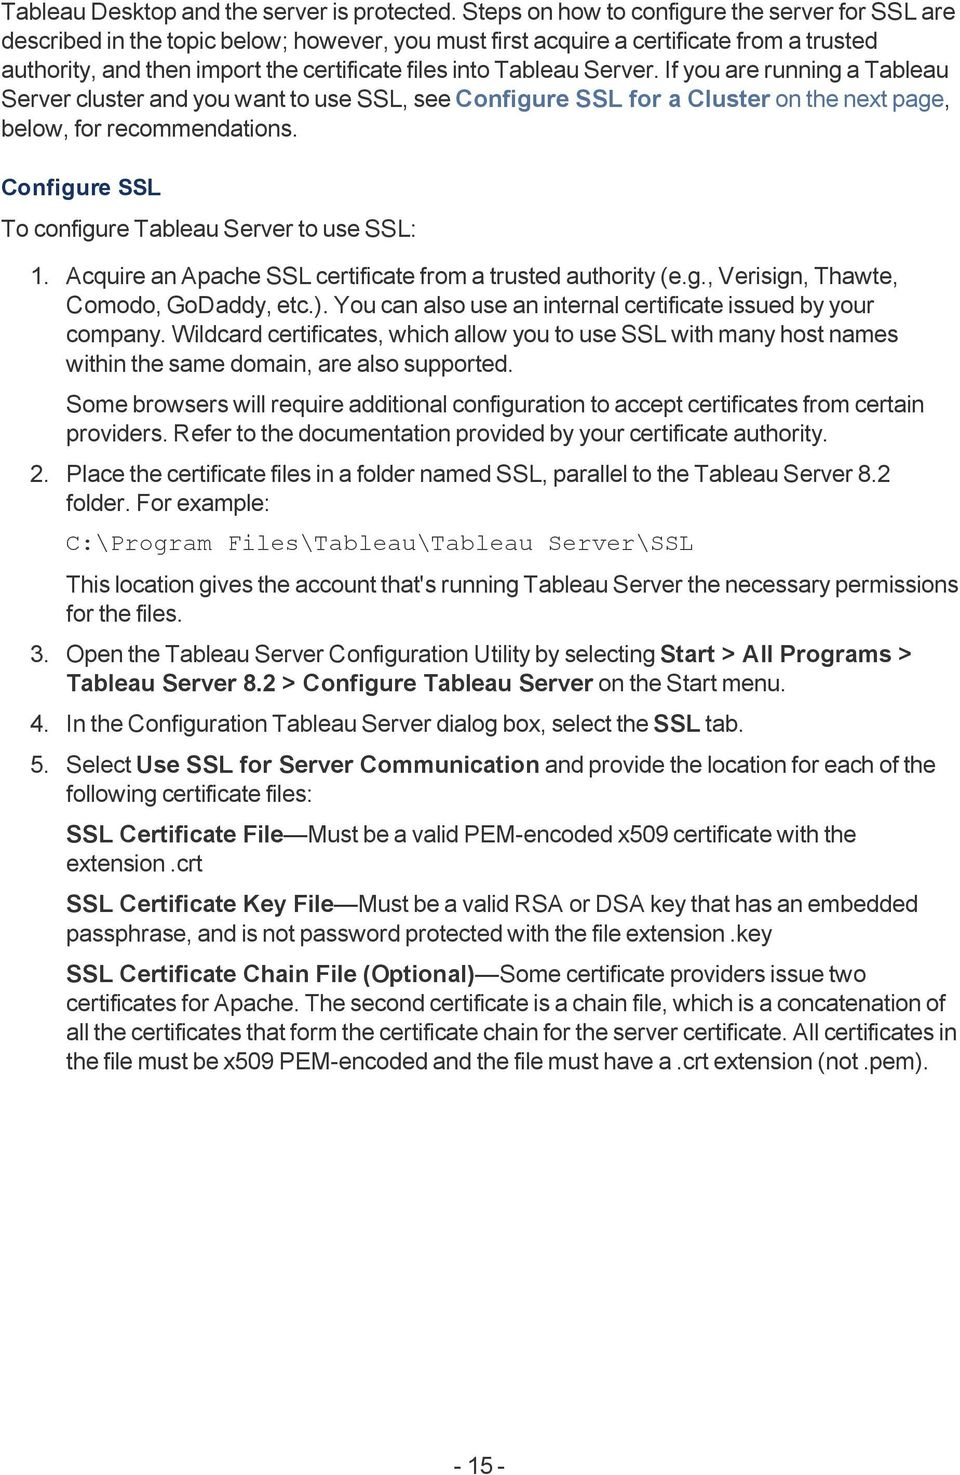 Tableau Server. If you are running a Tableau Server cluster and you want to use SSL, see Configure SSL for a Cluster on the next page, below, for recommendations.